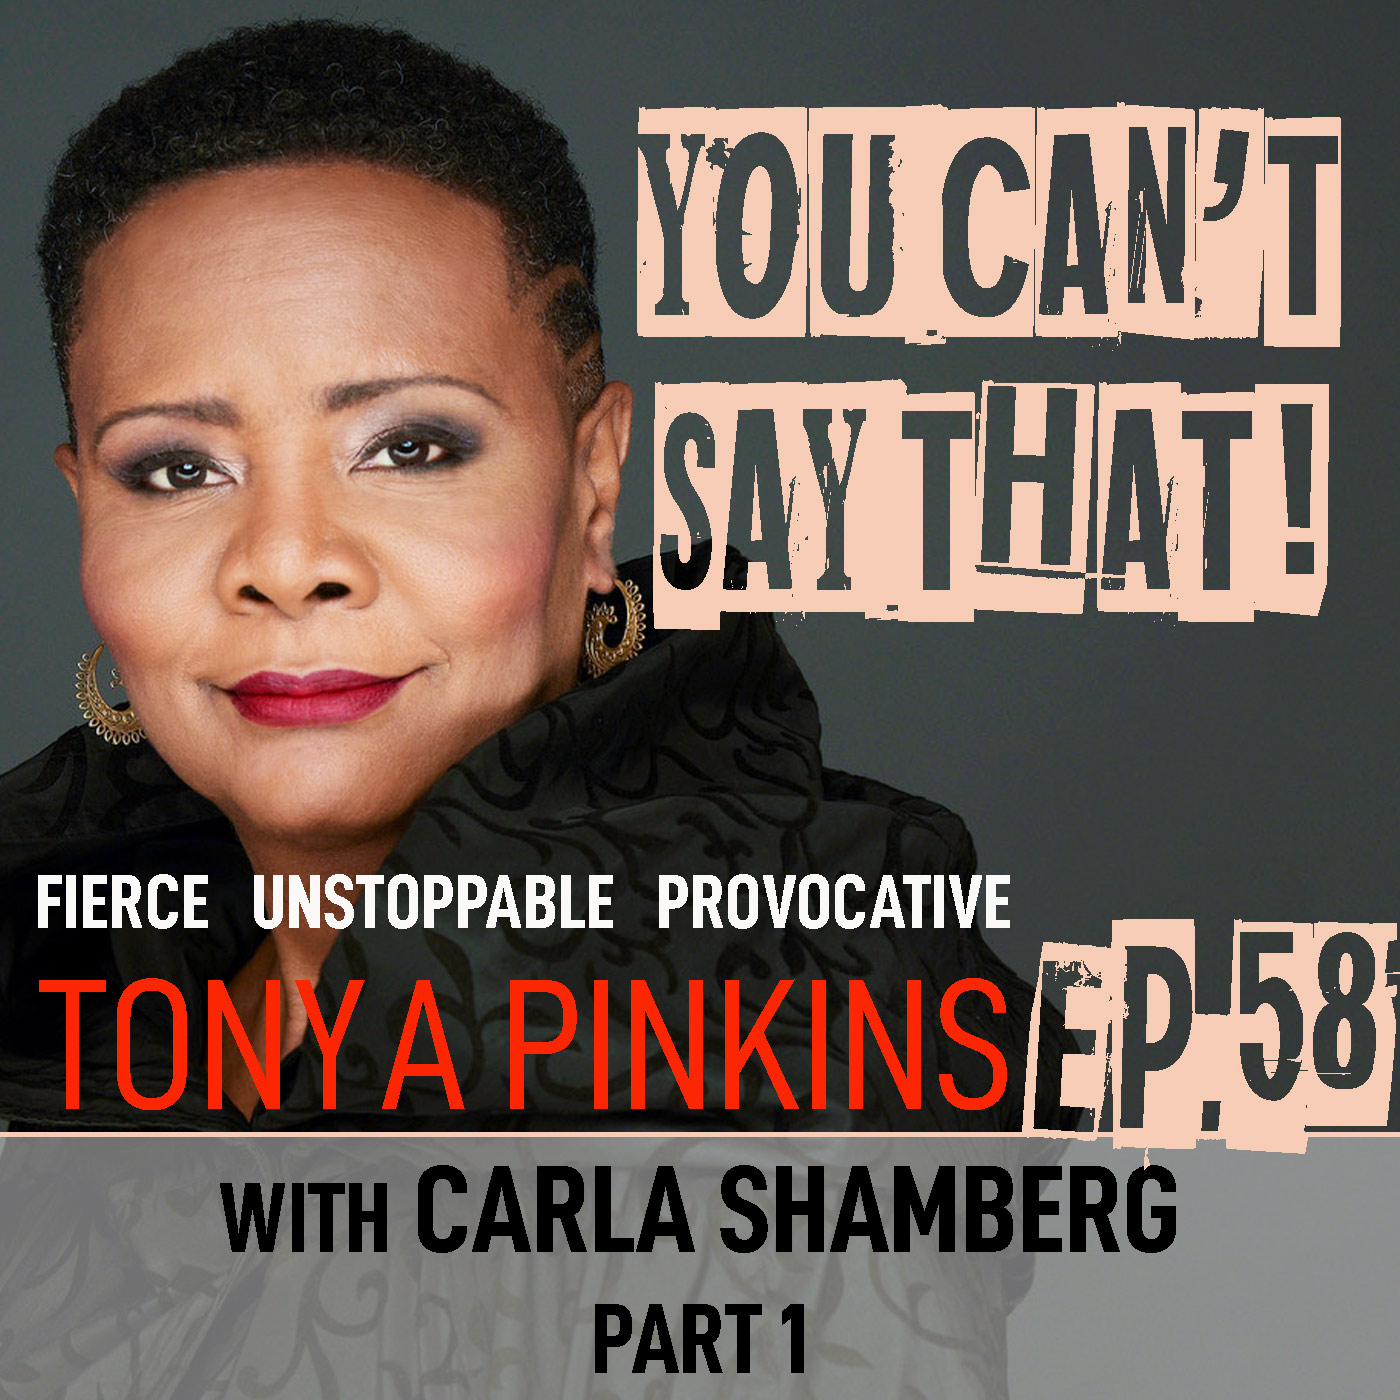 You Can't Say That Tonya Pinkins Ep58 - Carla Shamberg (Part 1)